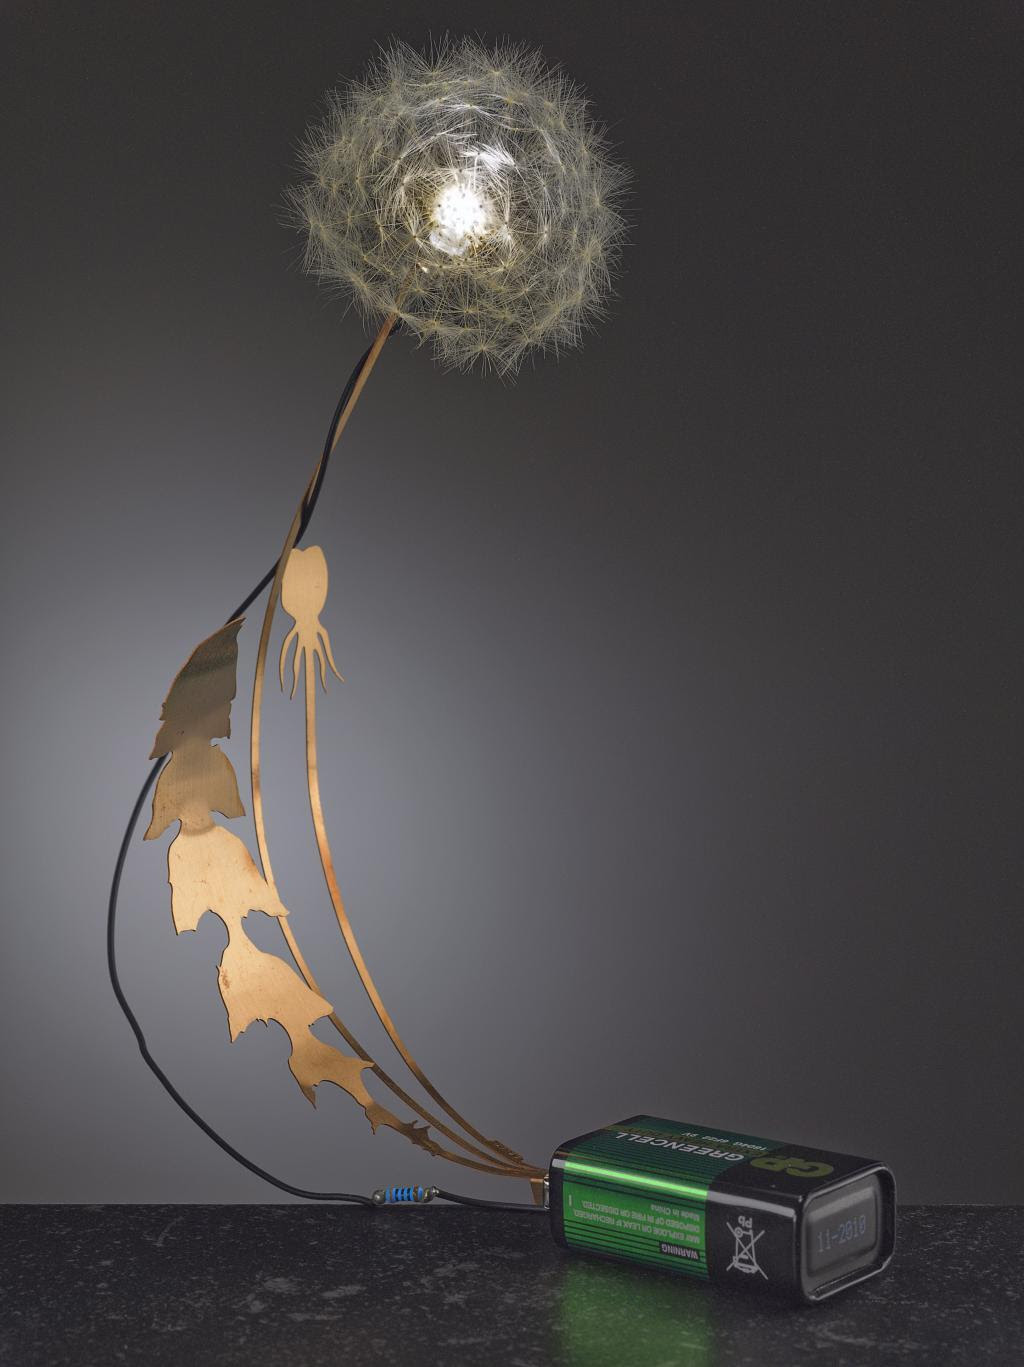 Studio Drift: Dandelight  Materials:phosphor Brons, real Dandelion, and LEDDandelightis a little luminous dandelion. This little piece of real nature lightens up by batteryfood. The real dandelion seeds are one by one connected to the L.E.D.